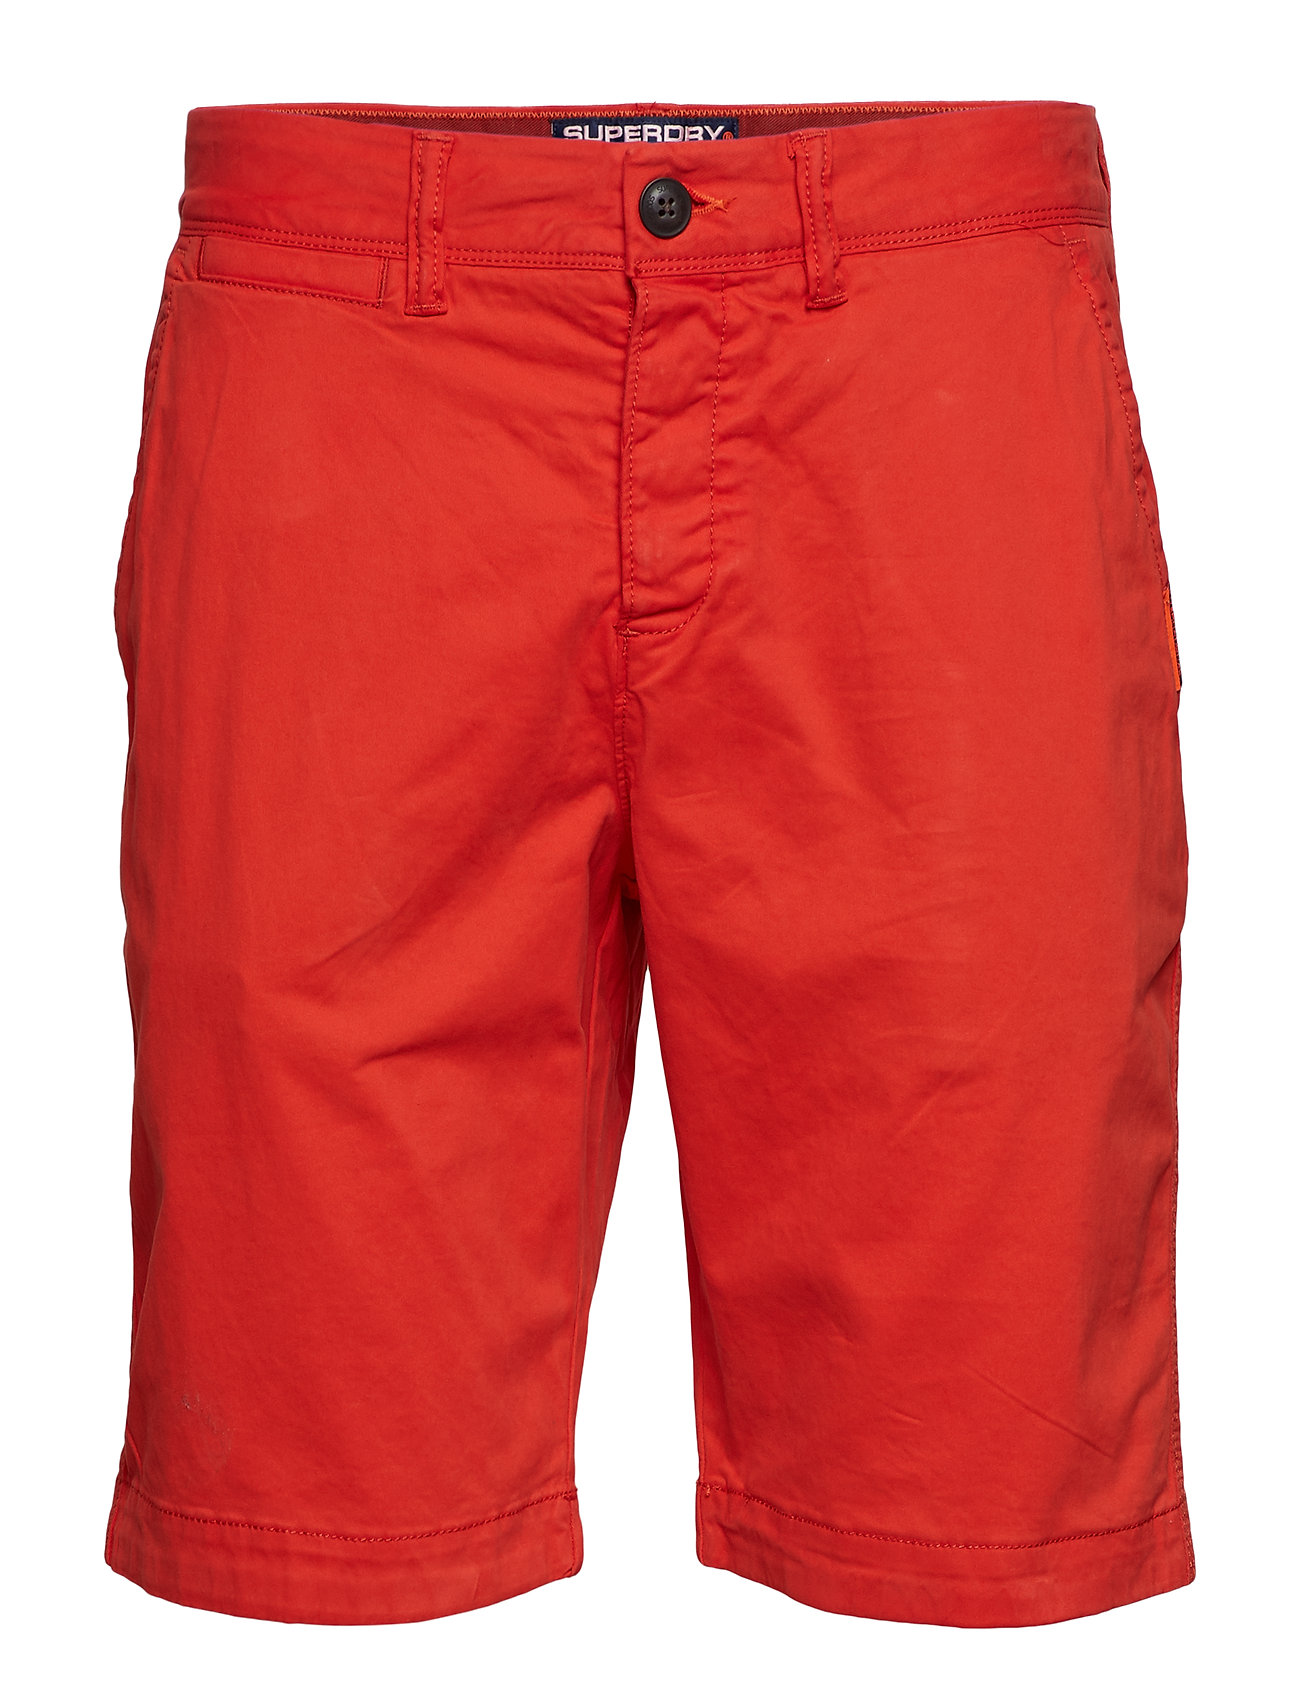 OrangeSuperdry Slim Slim Chino Shortmoorside Shortmoorside International Slim Shortmoorside International OrangeSuperdry Chino Chino International SpqMGzVU